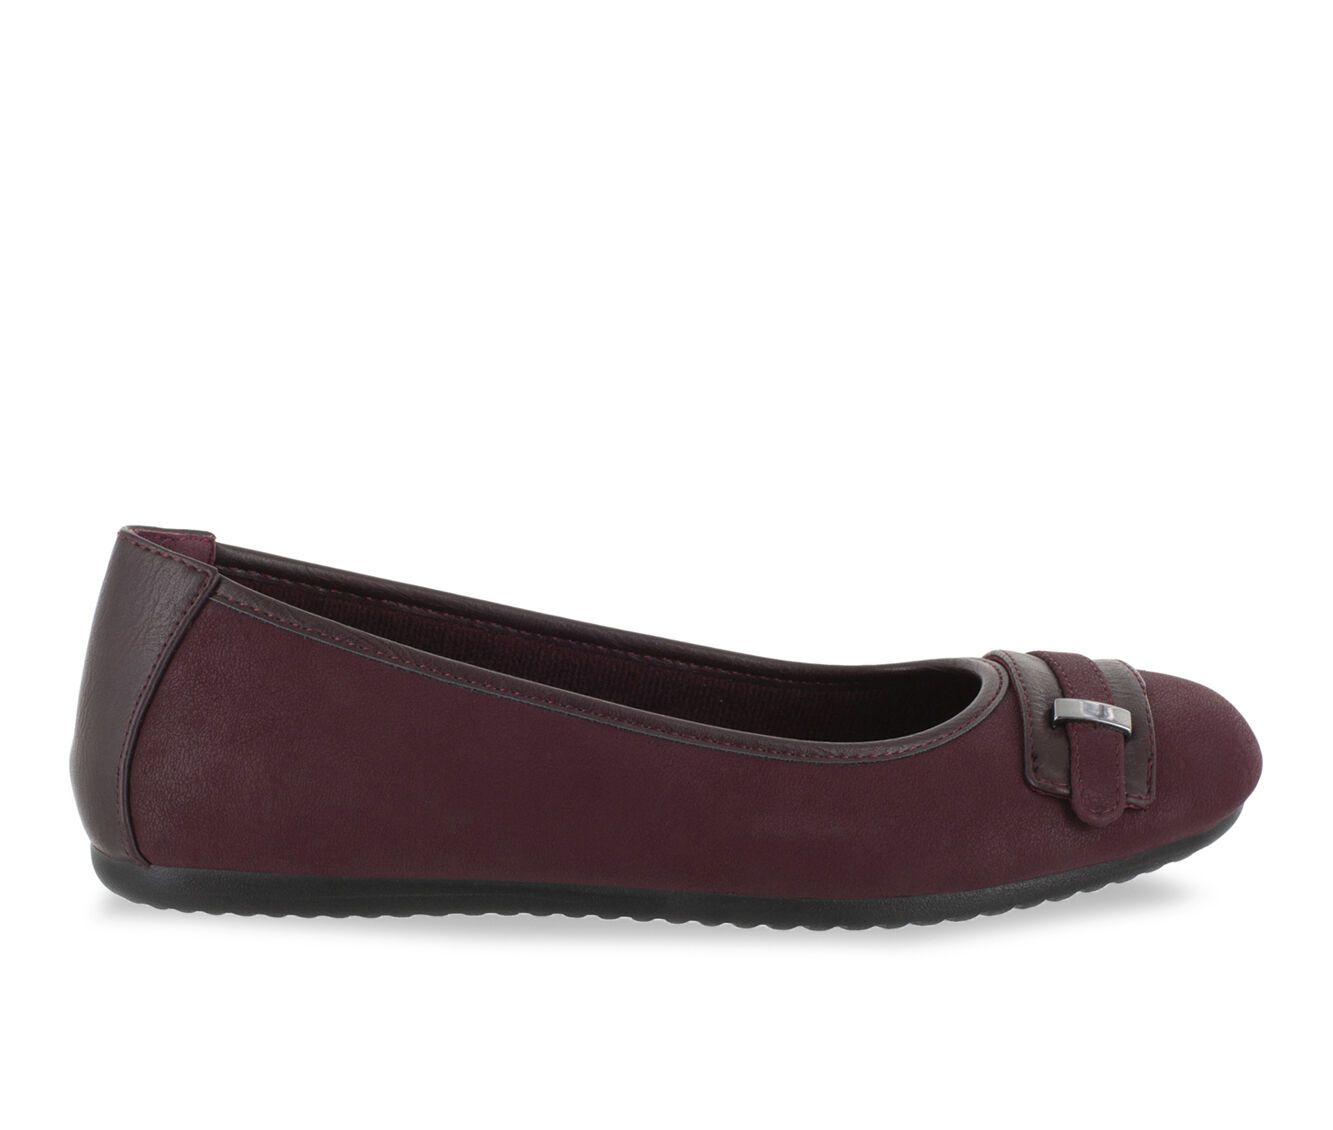 Good Sale Women's Easy Street Angie Shoes Burgundy